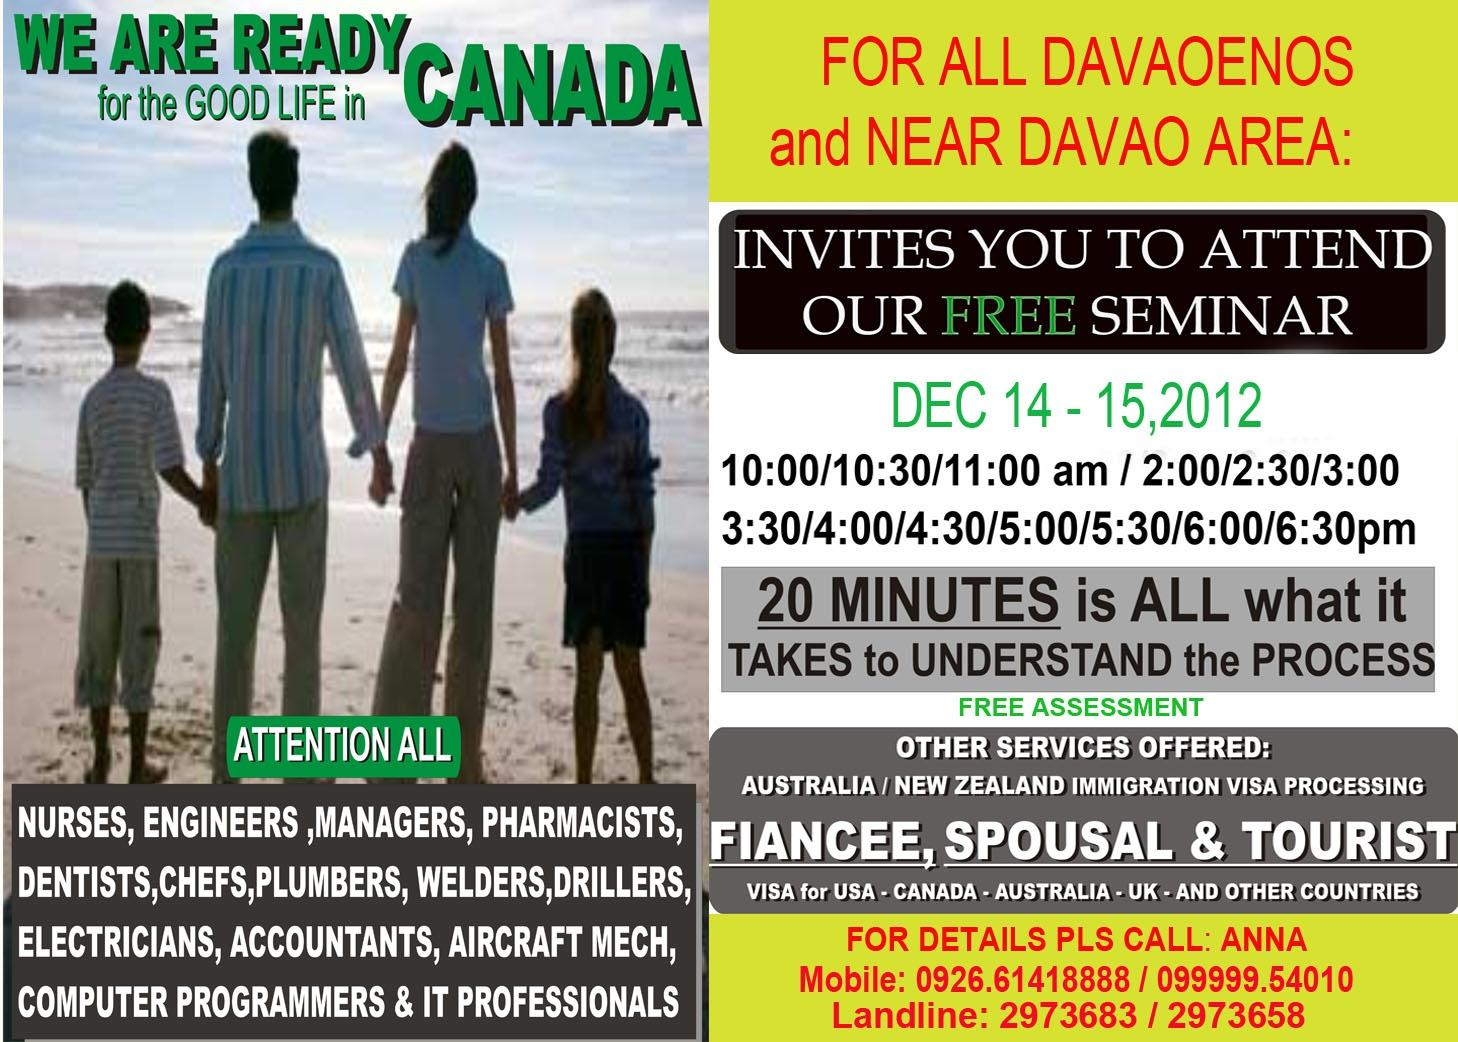 Aspire One Global Visa Services invites you to attend our Free Seminar this Dec 14 and 15, 2012 http://t.co/8fesA0U1